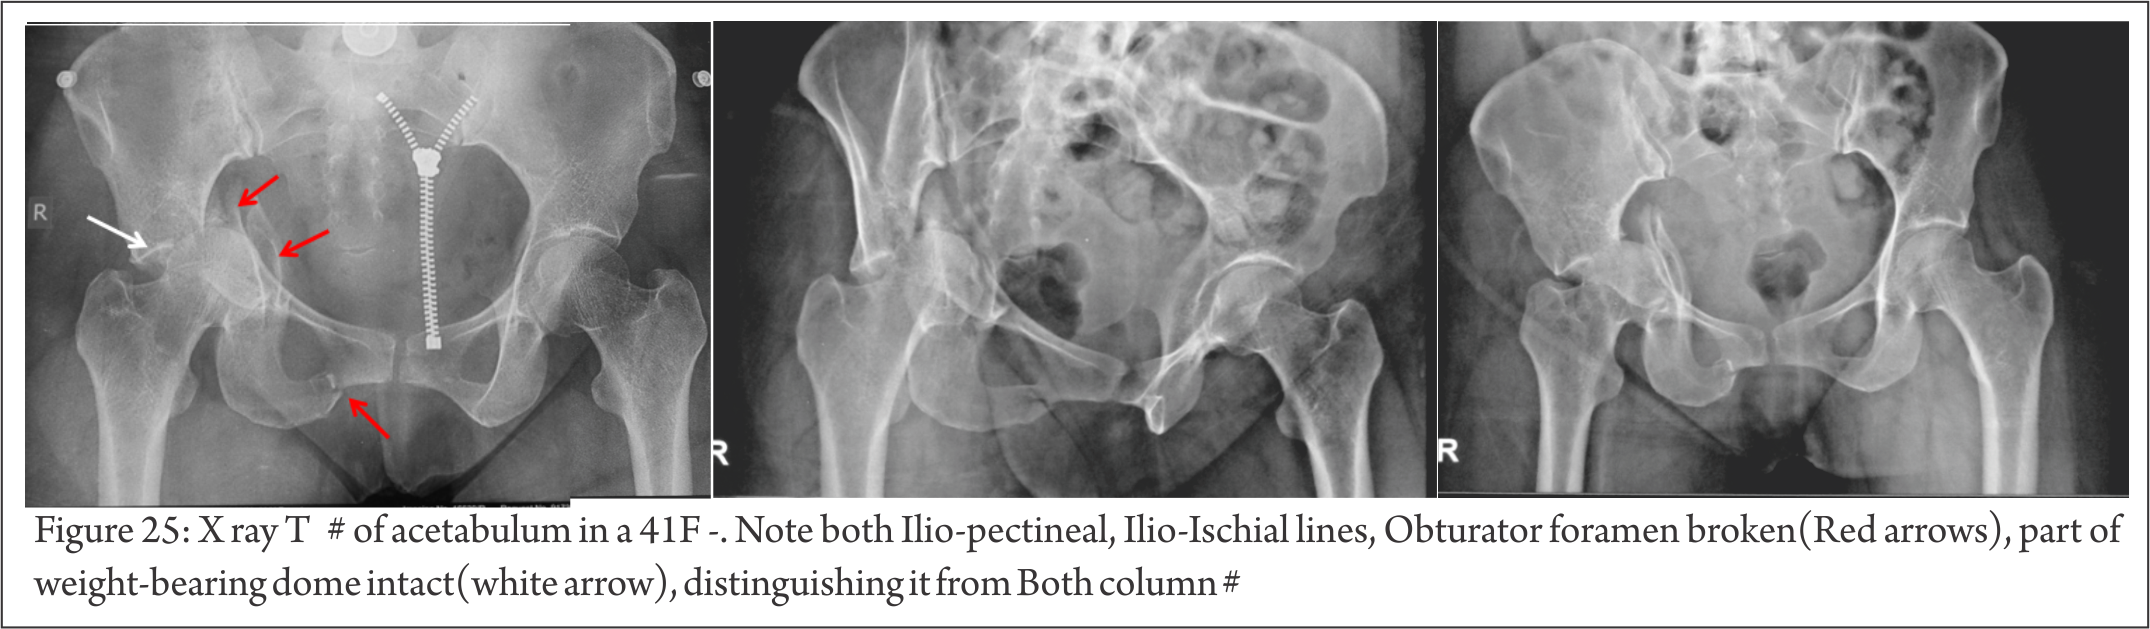 Understanding Clinical Radiology of Fracture Acetabulum - Trauma ...